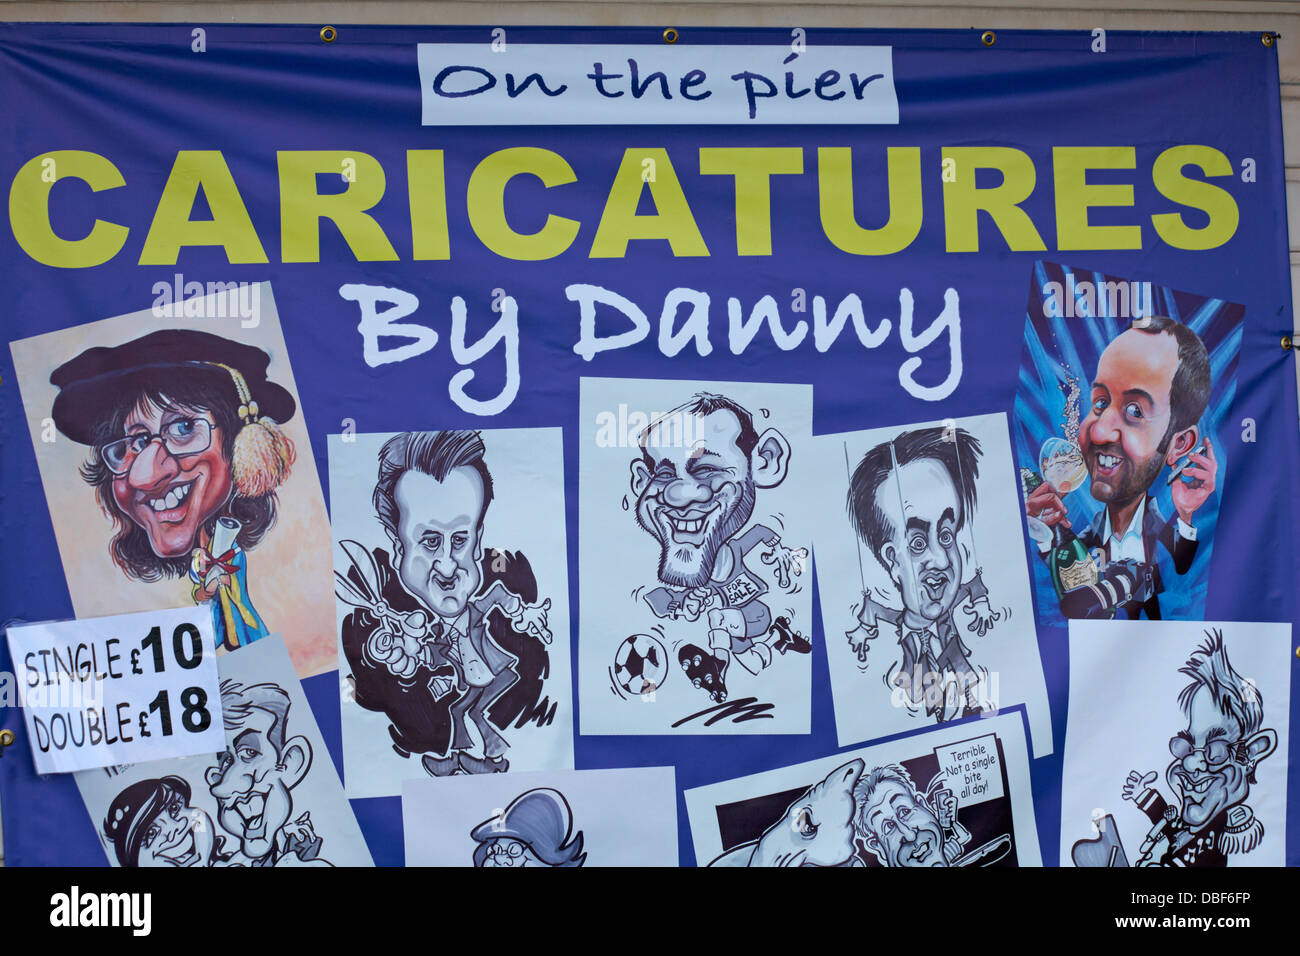 on the pier caricatures by Danny at Bournemouth Pier in July - Stock Image